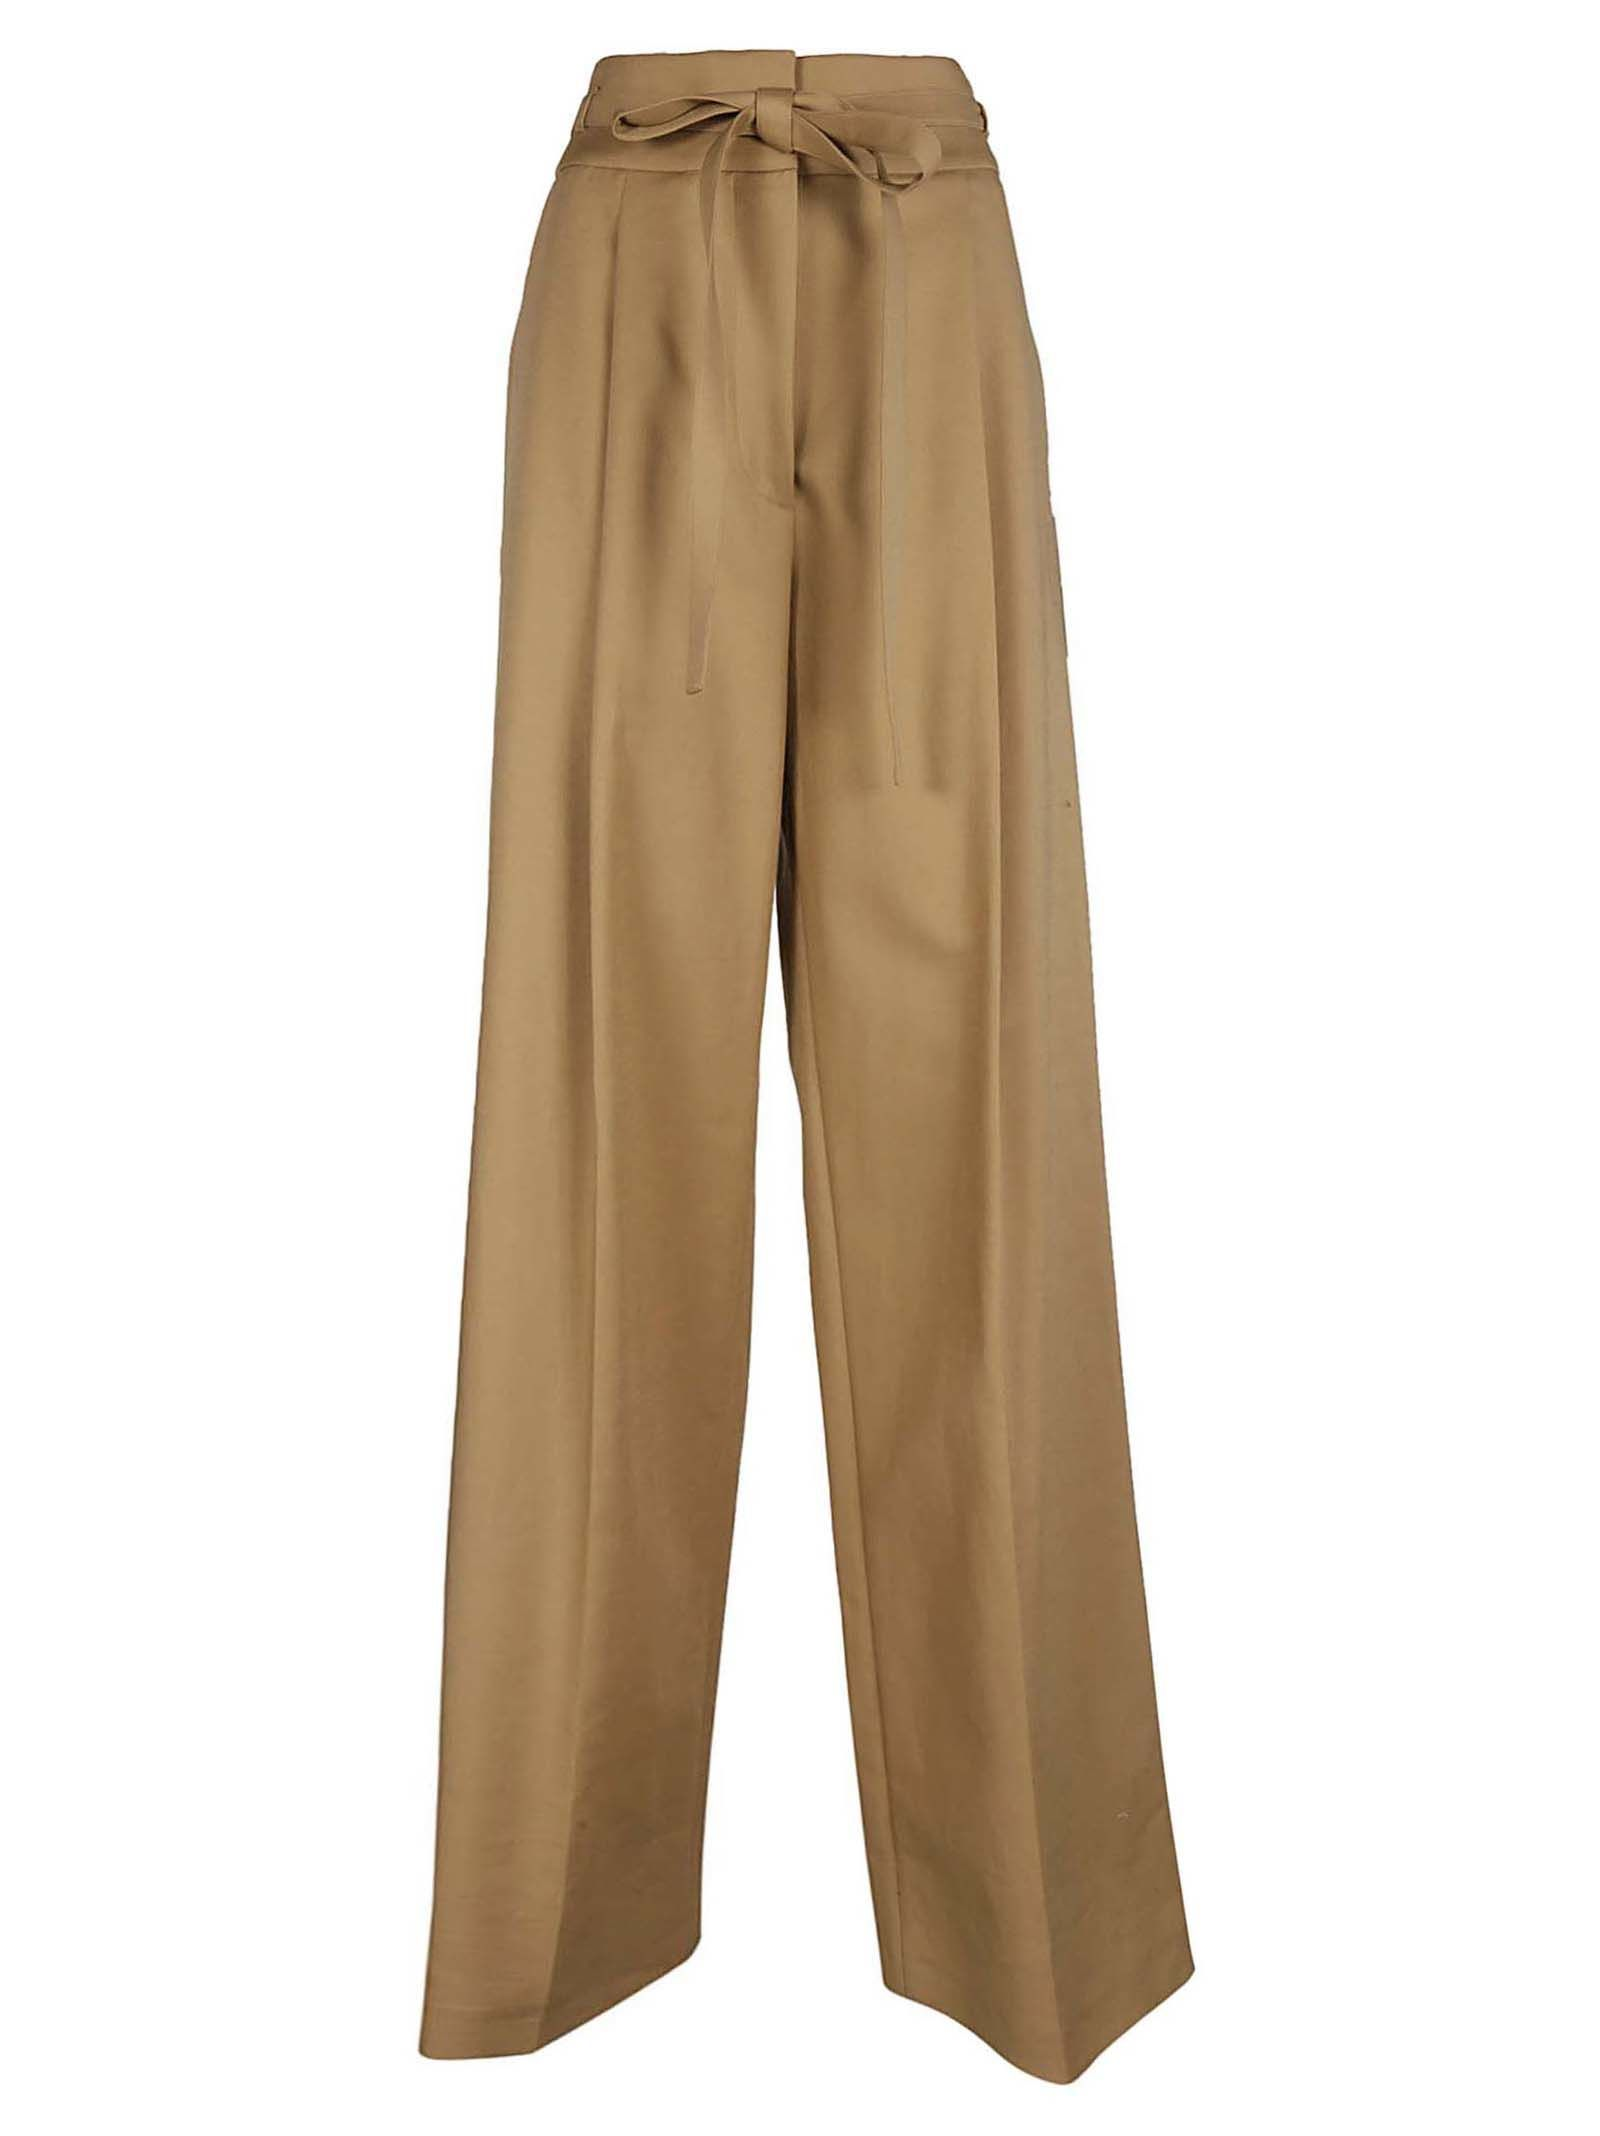 WIDE-LEG TROUSERS from Italist.com